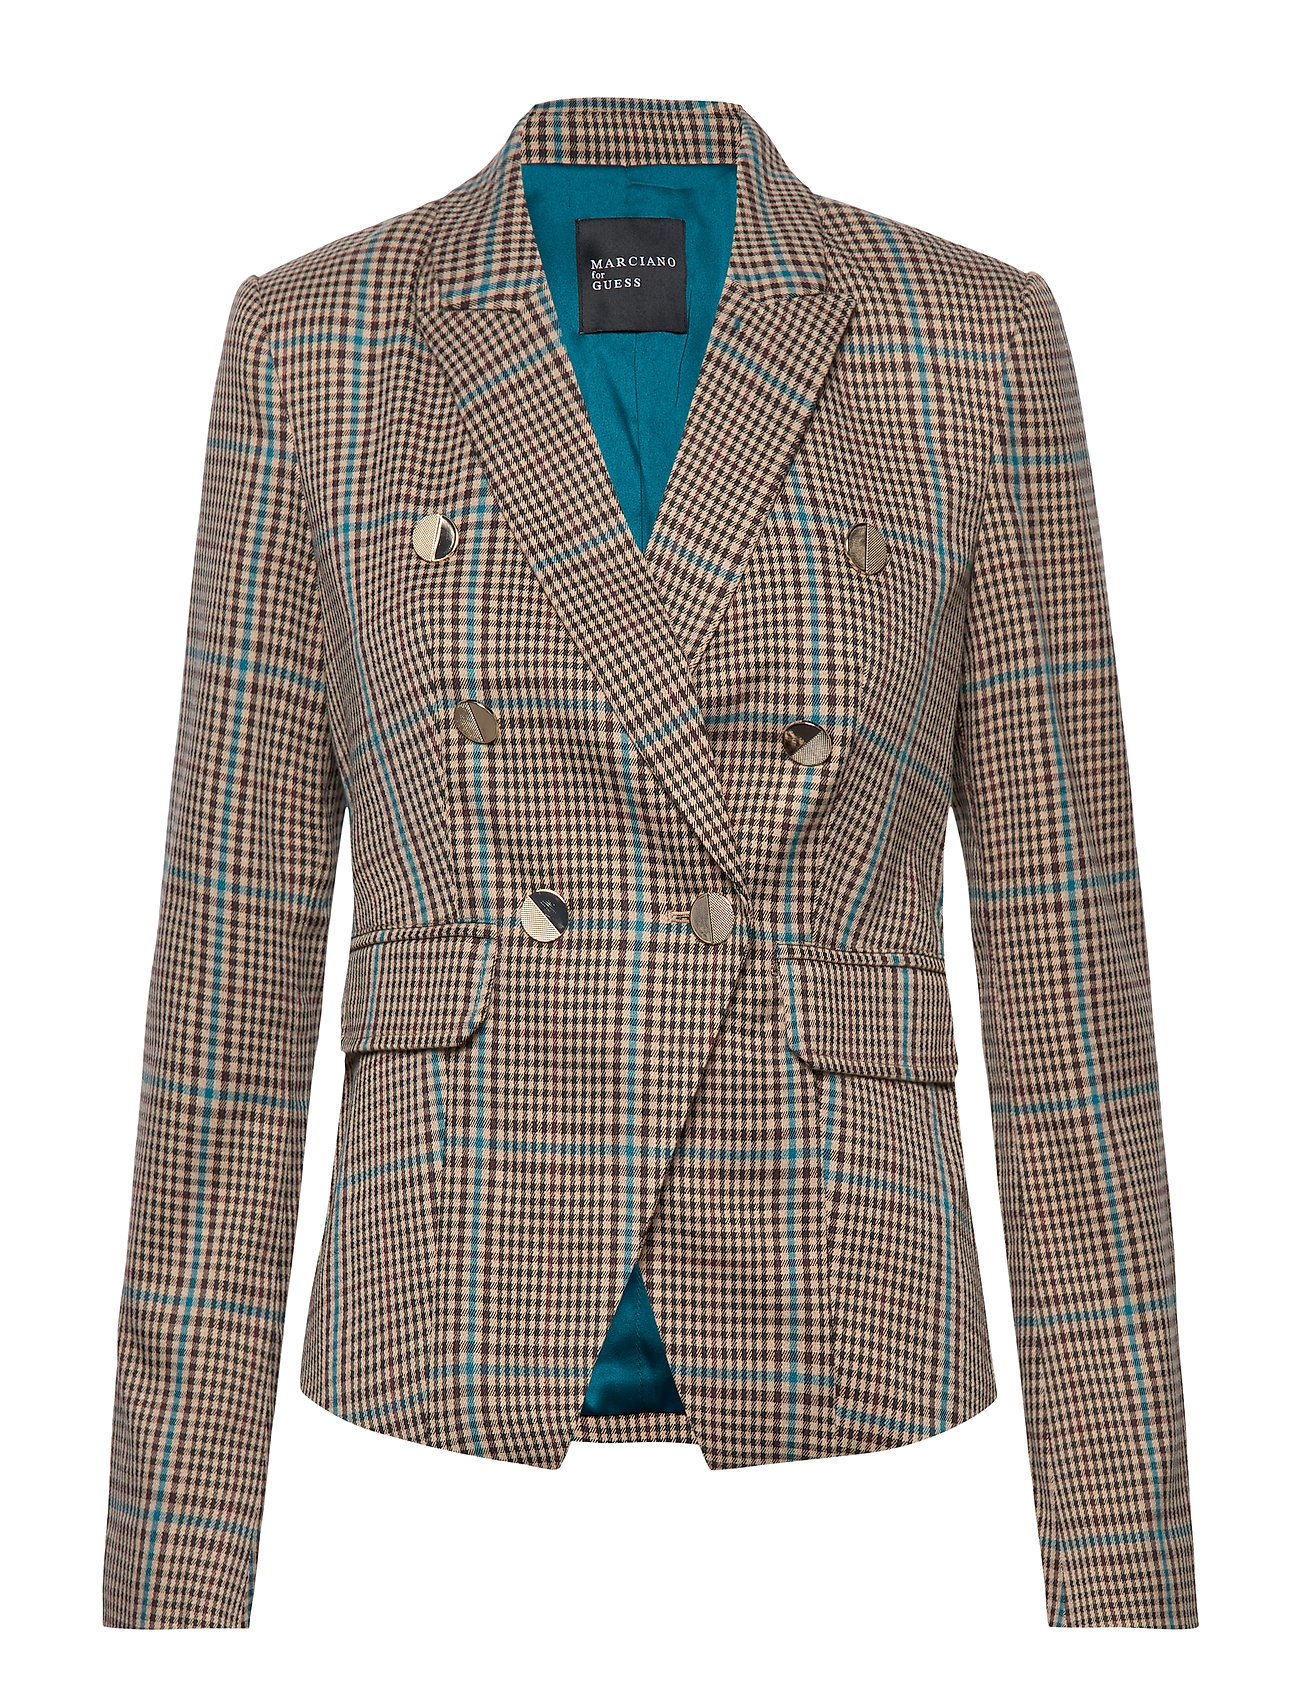 Marciano by GUESS PLAYFUL PLAID BLAZER - CHECK WARM BEIGE/